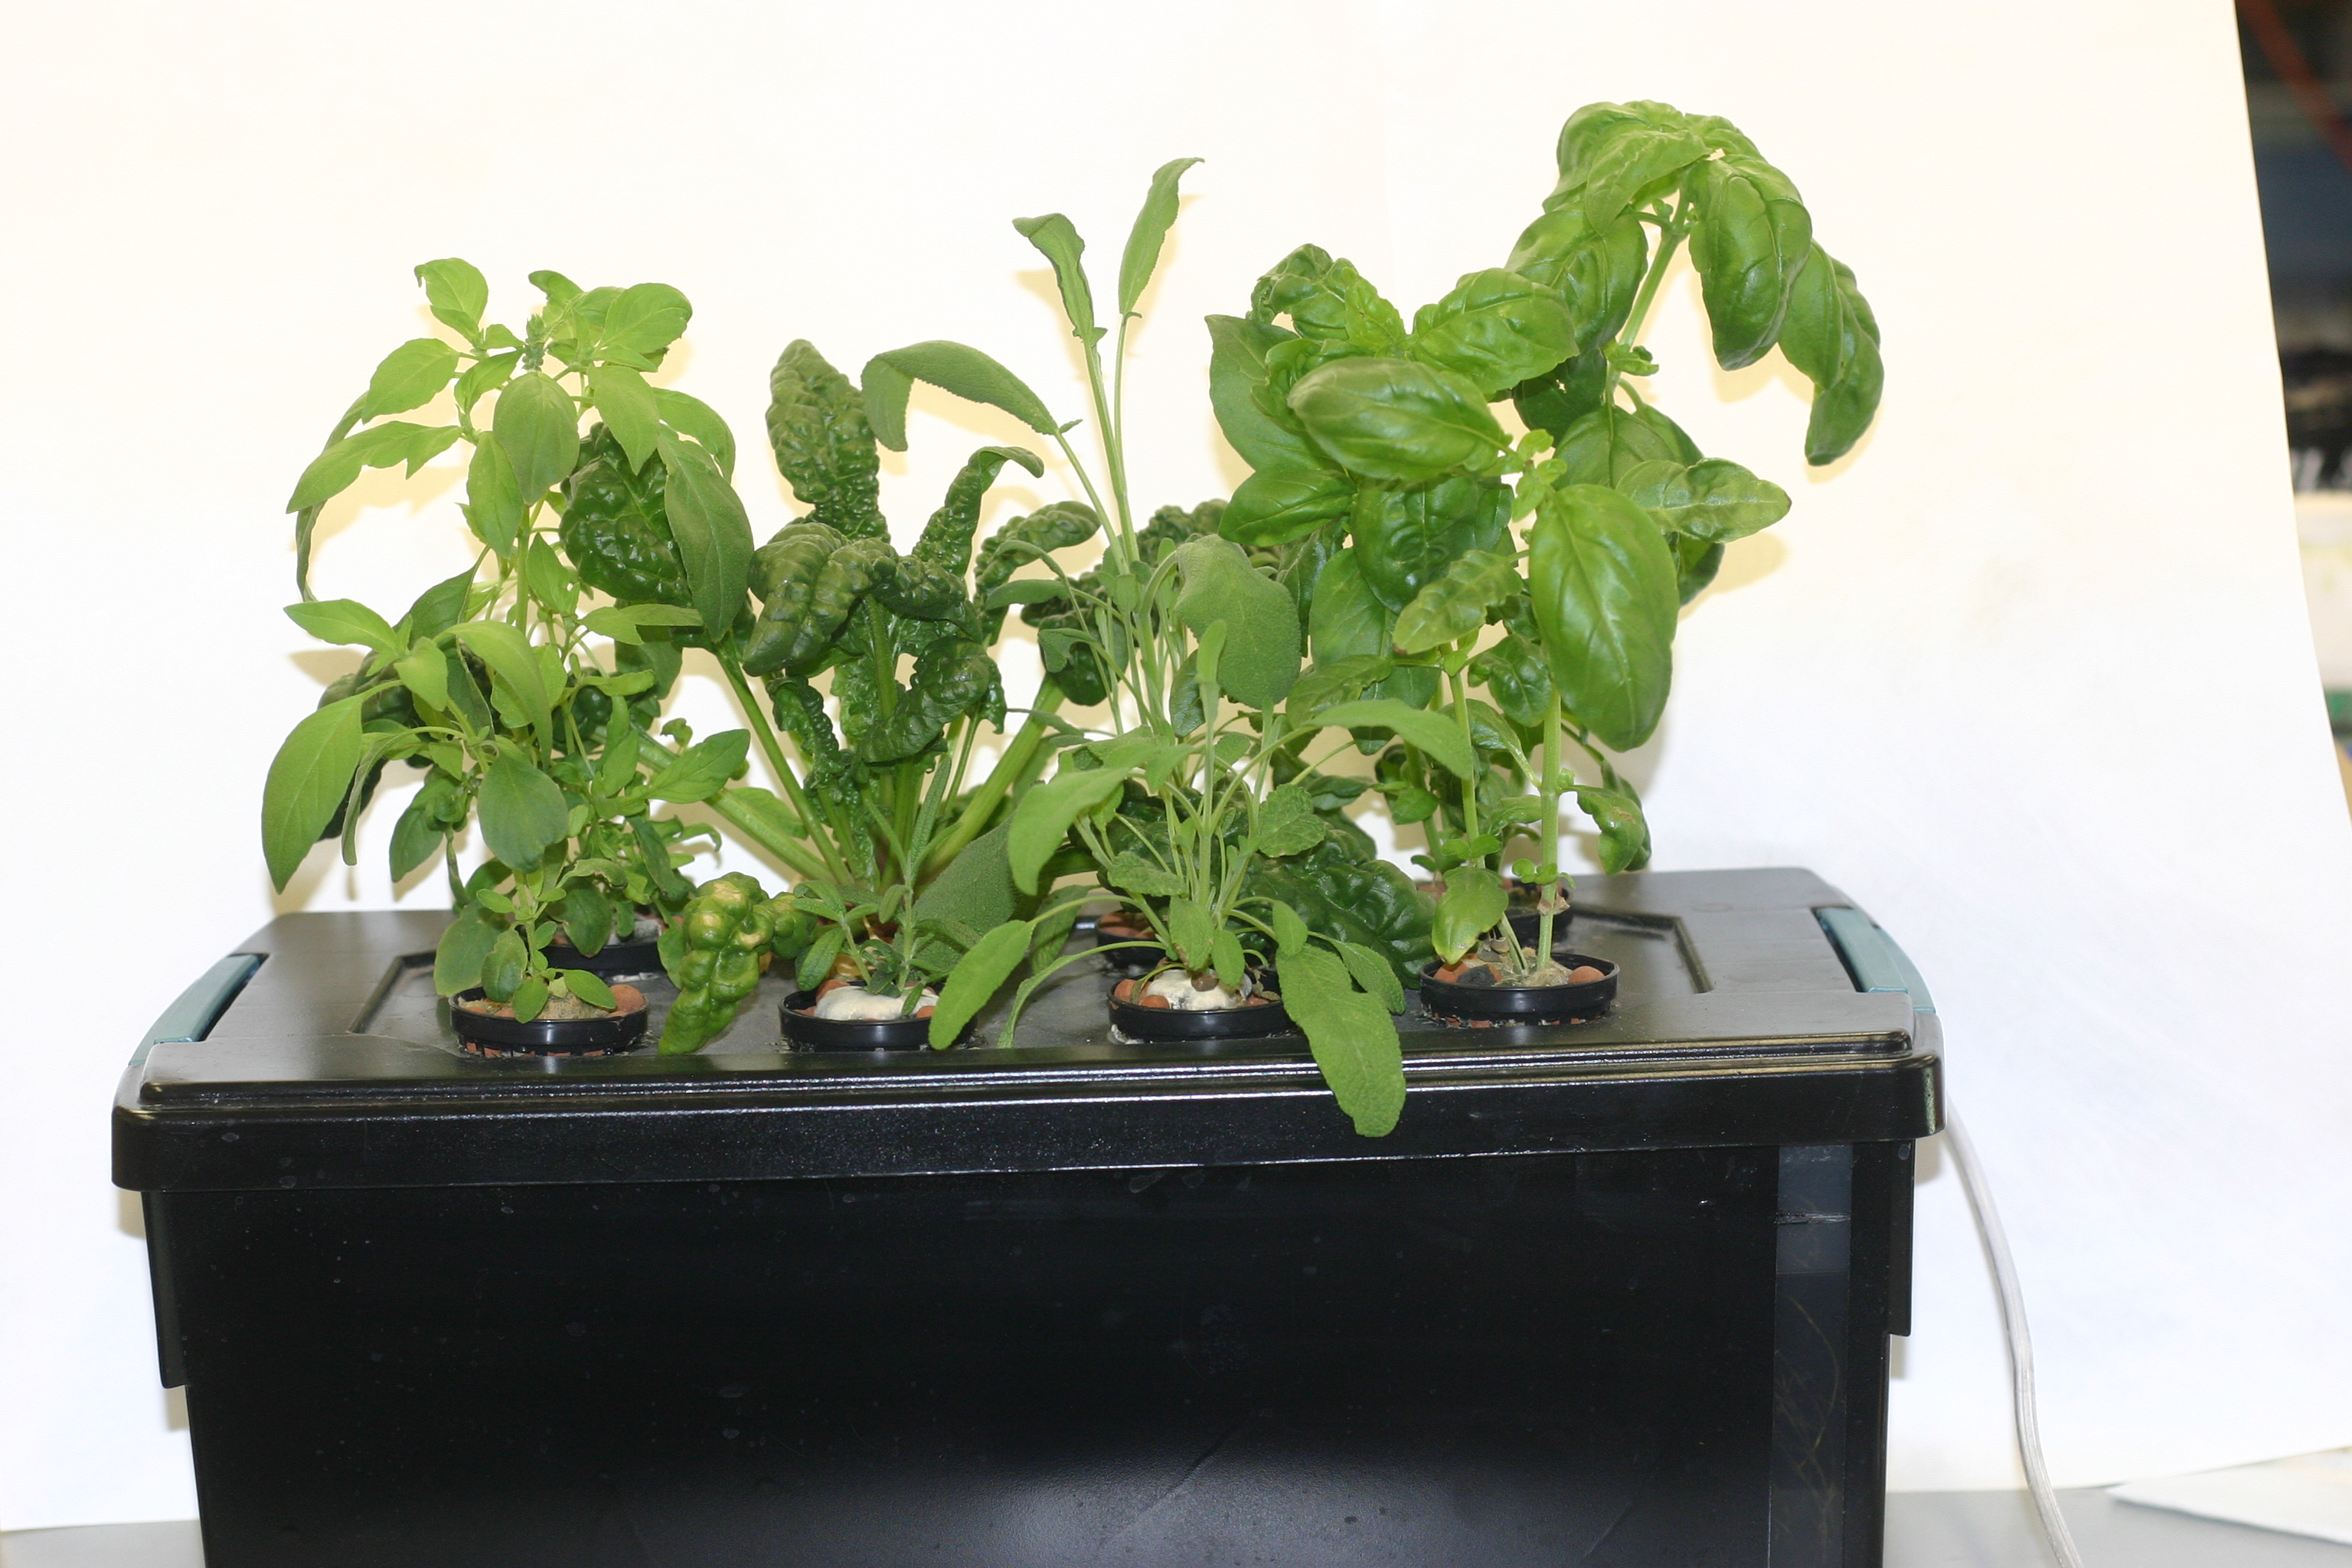 Home Made Windowsill Hydroponic Herb Garden